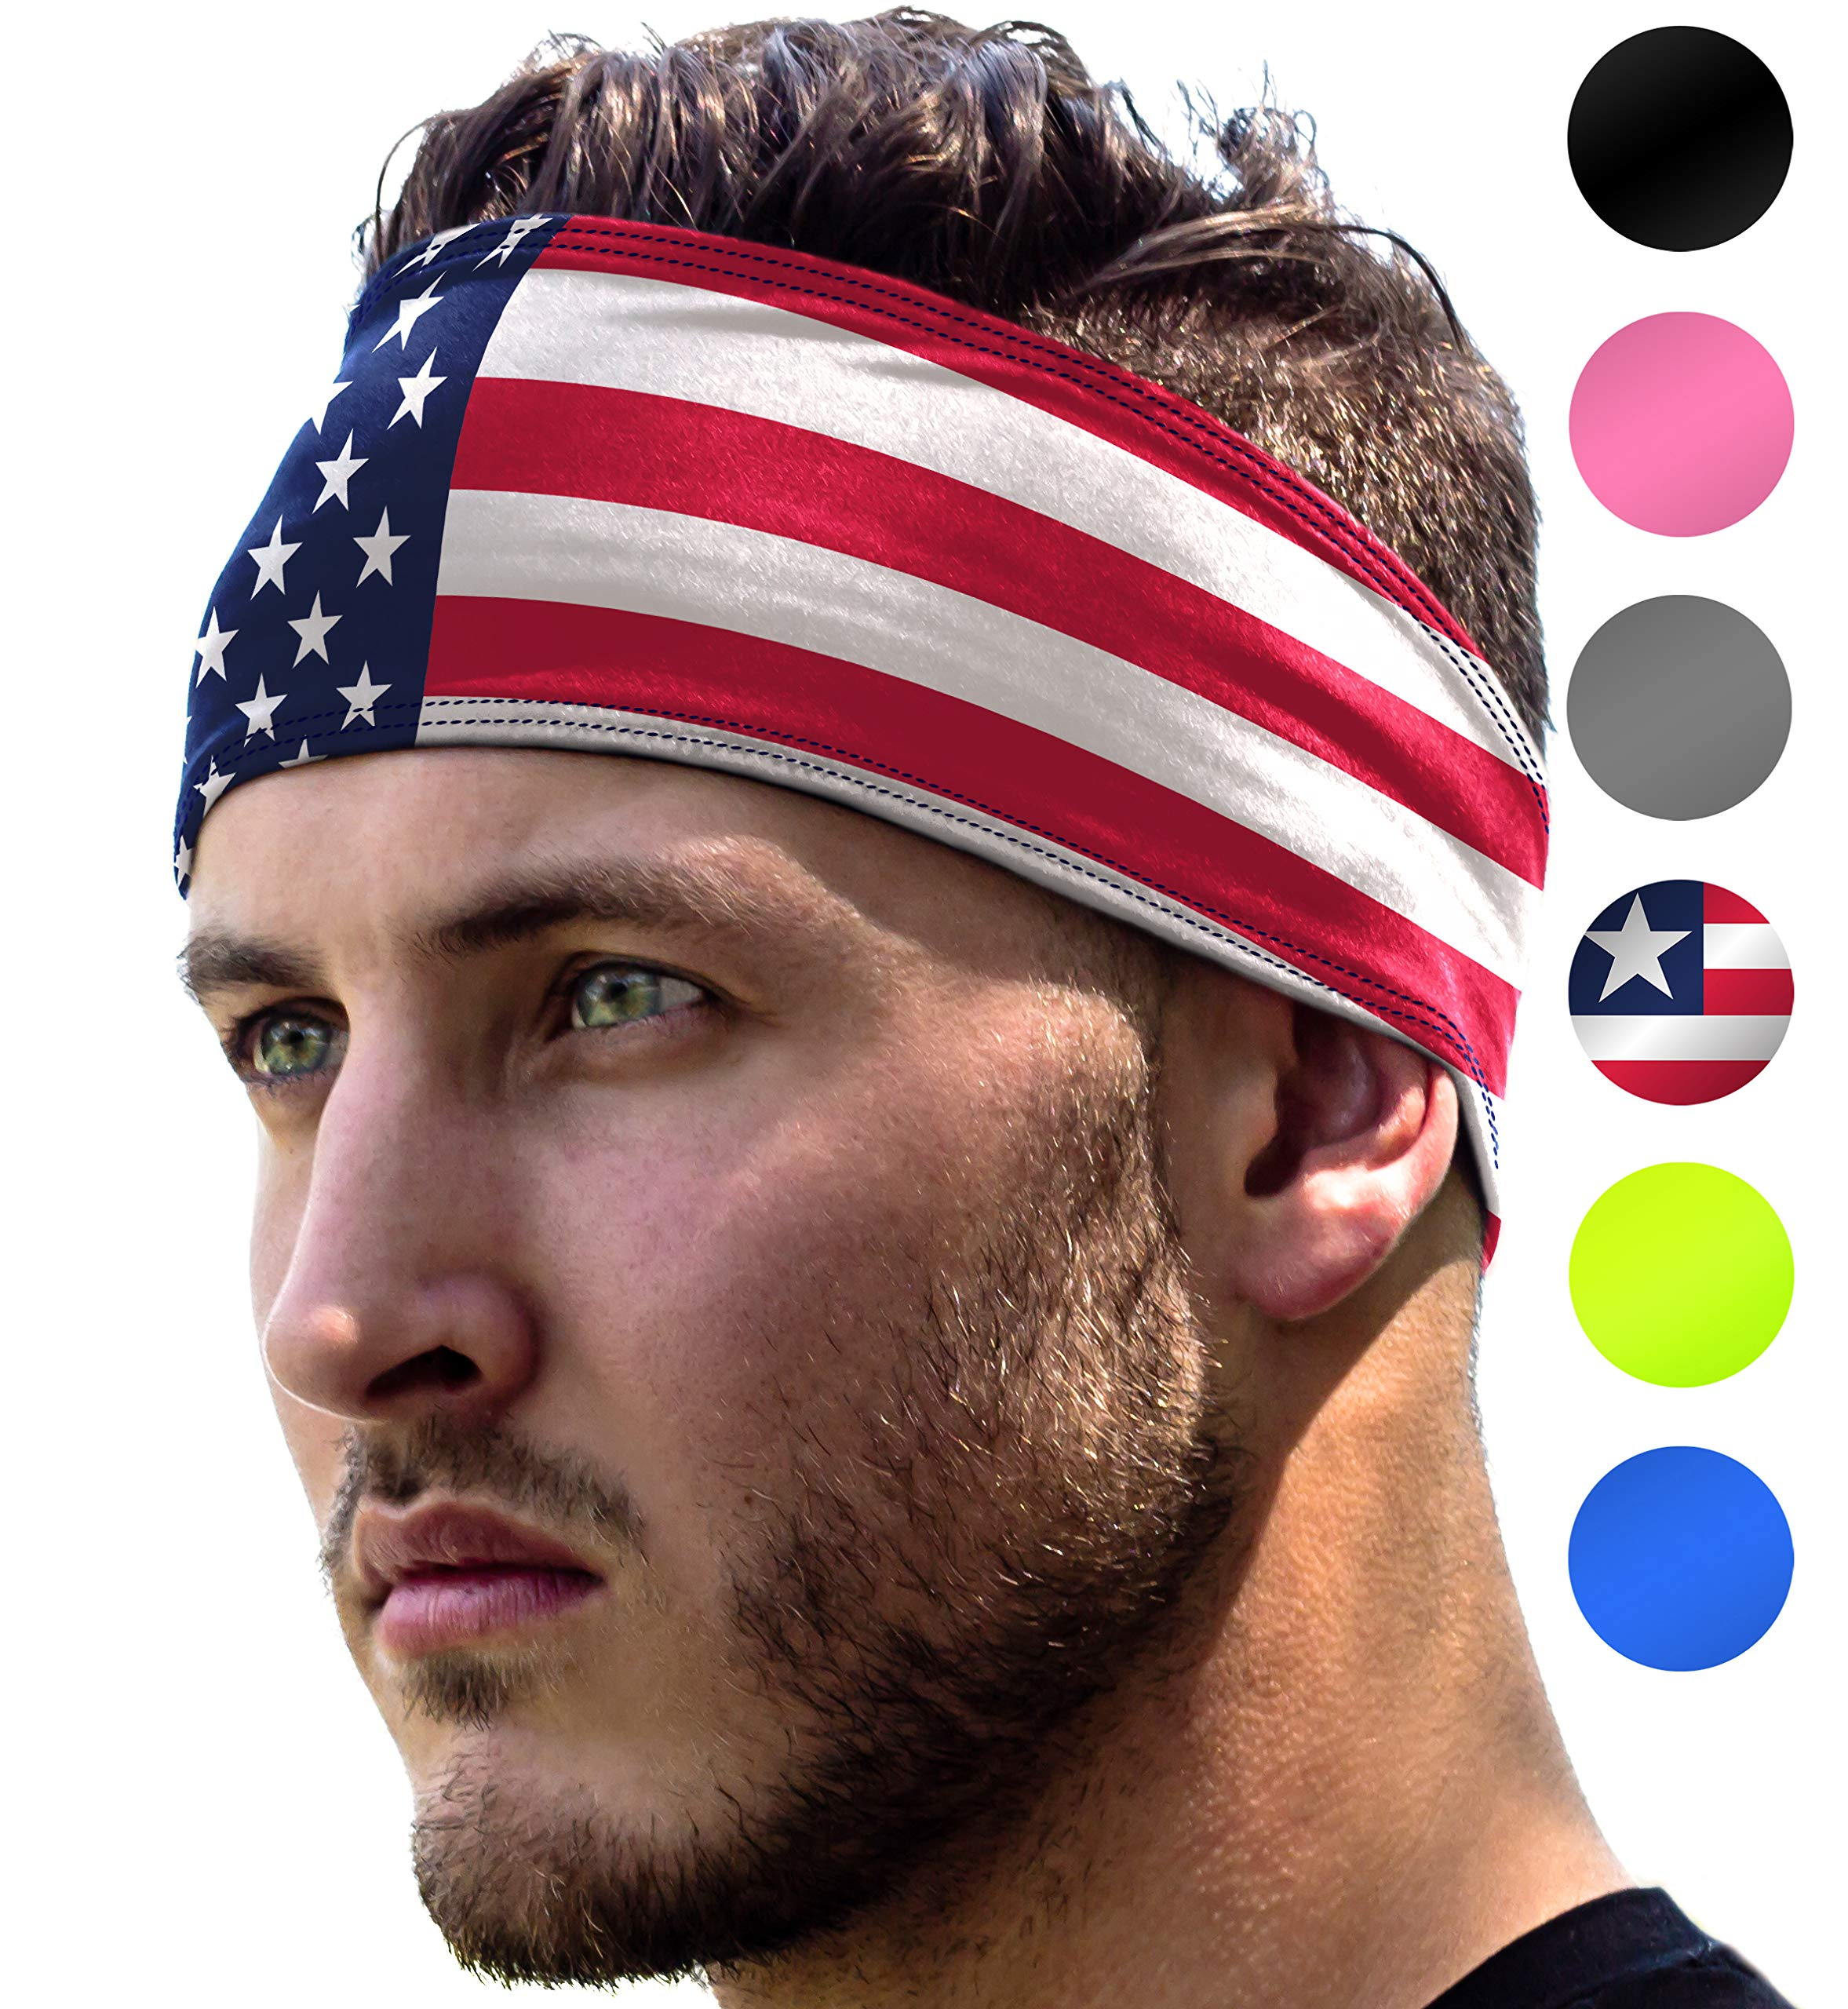 Workout Headband: Unisex Fitness USA Flag Headbands for Women & Men. 4th of July US Head Band Sweatband 4 Running, Yoga, Gym Exercise. Sport Sweatbands & Sweat Wicking Athletic Party Head Wrap Bands by E Tronic Edge